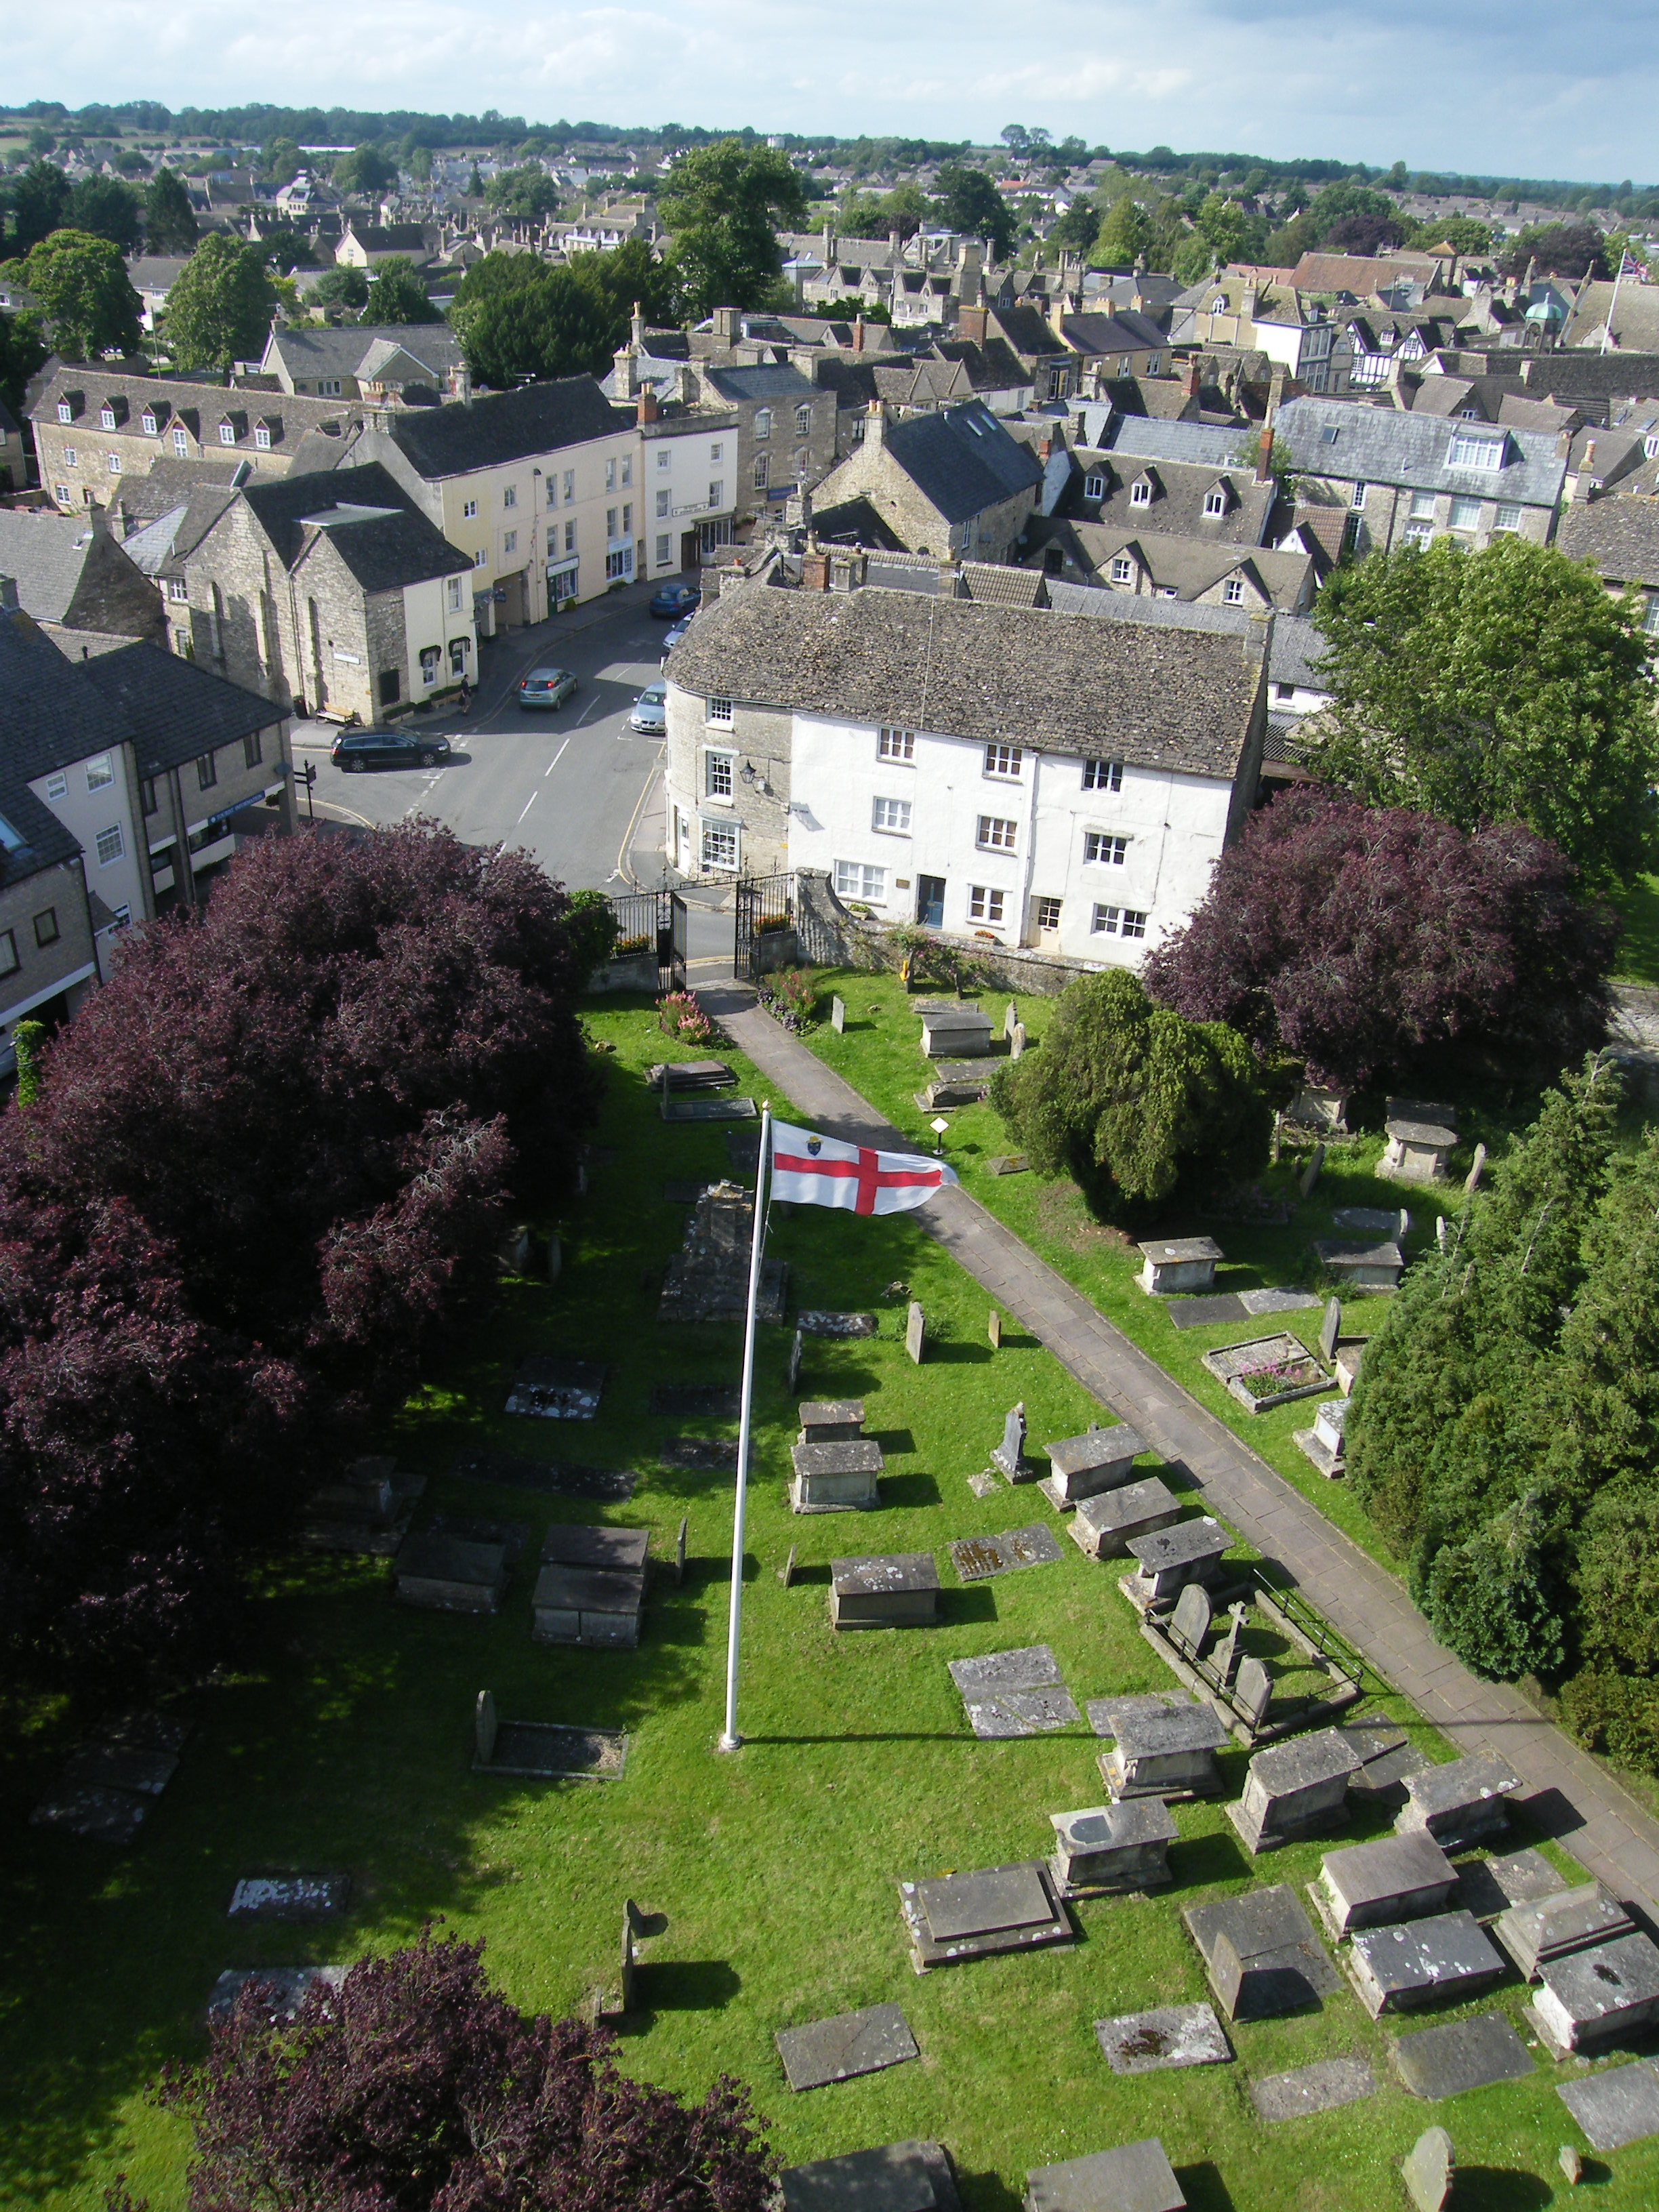 View from the Top of the Church Tower, Church Open Day, July 2012